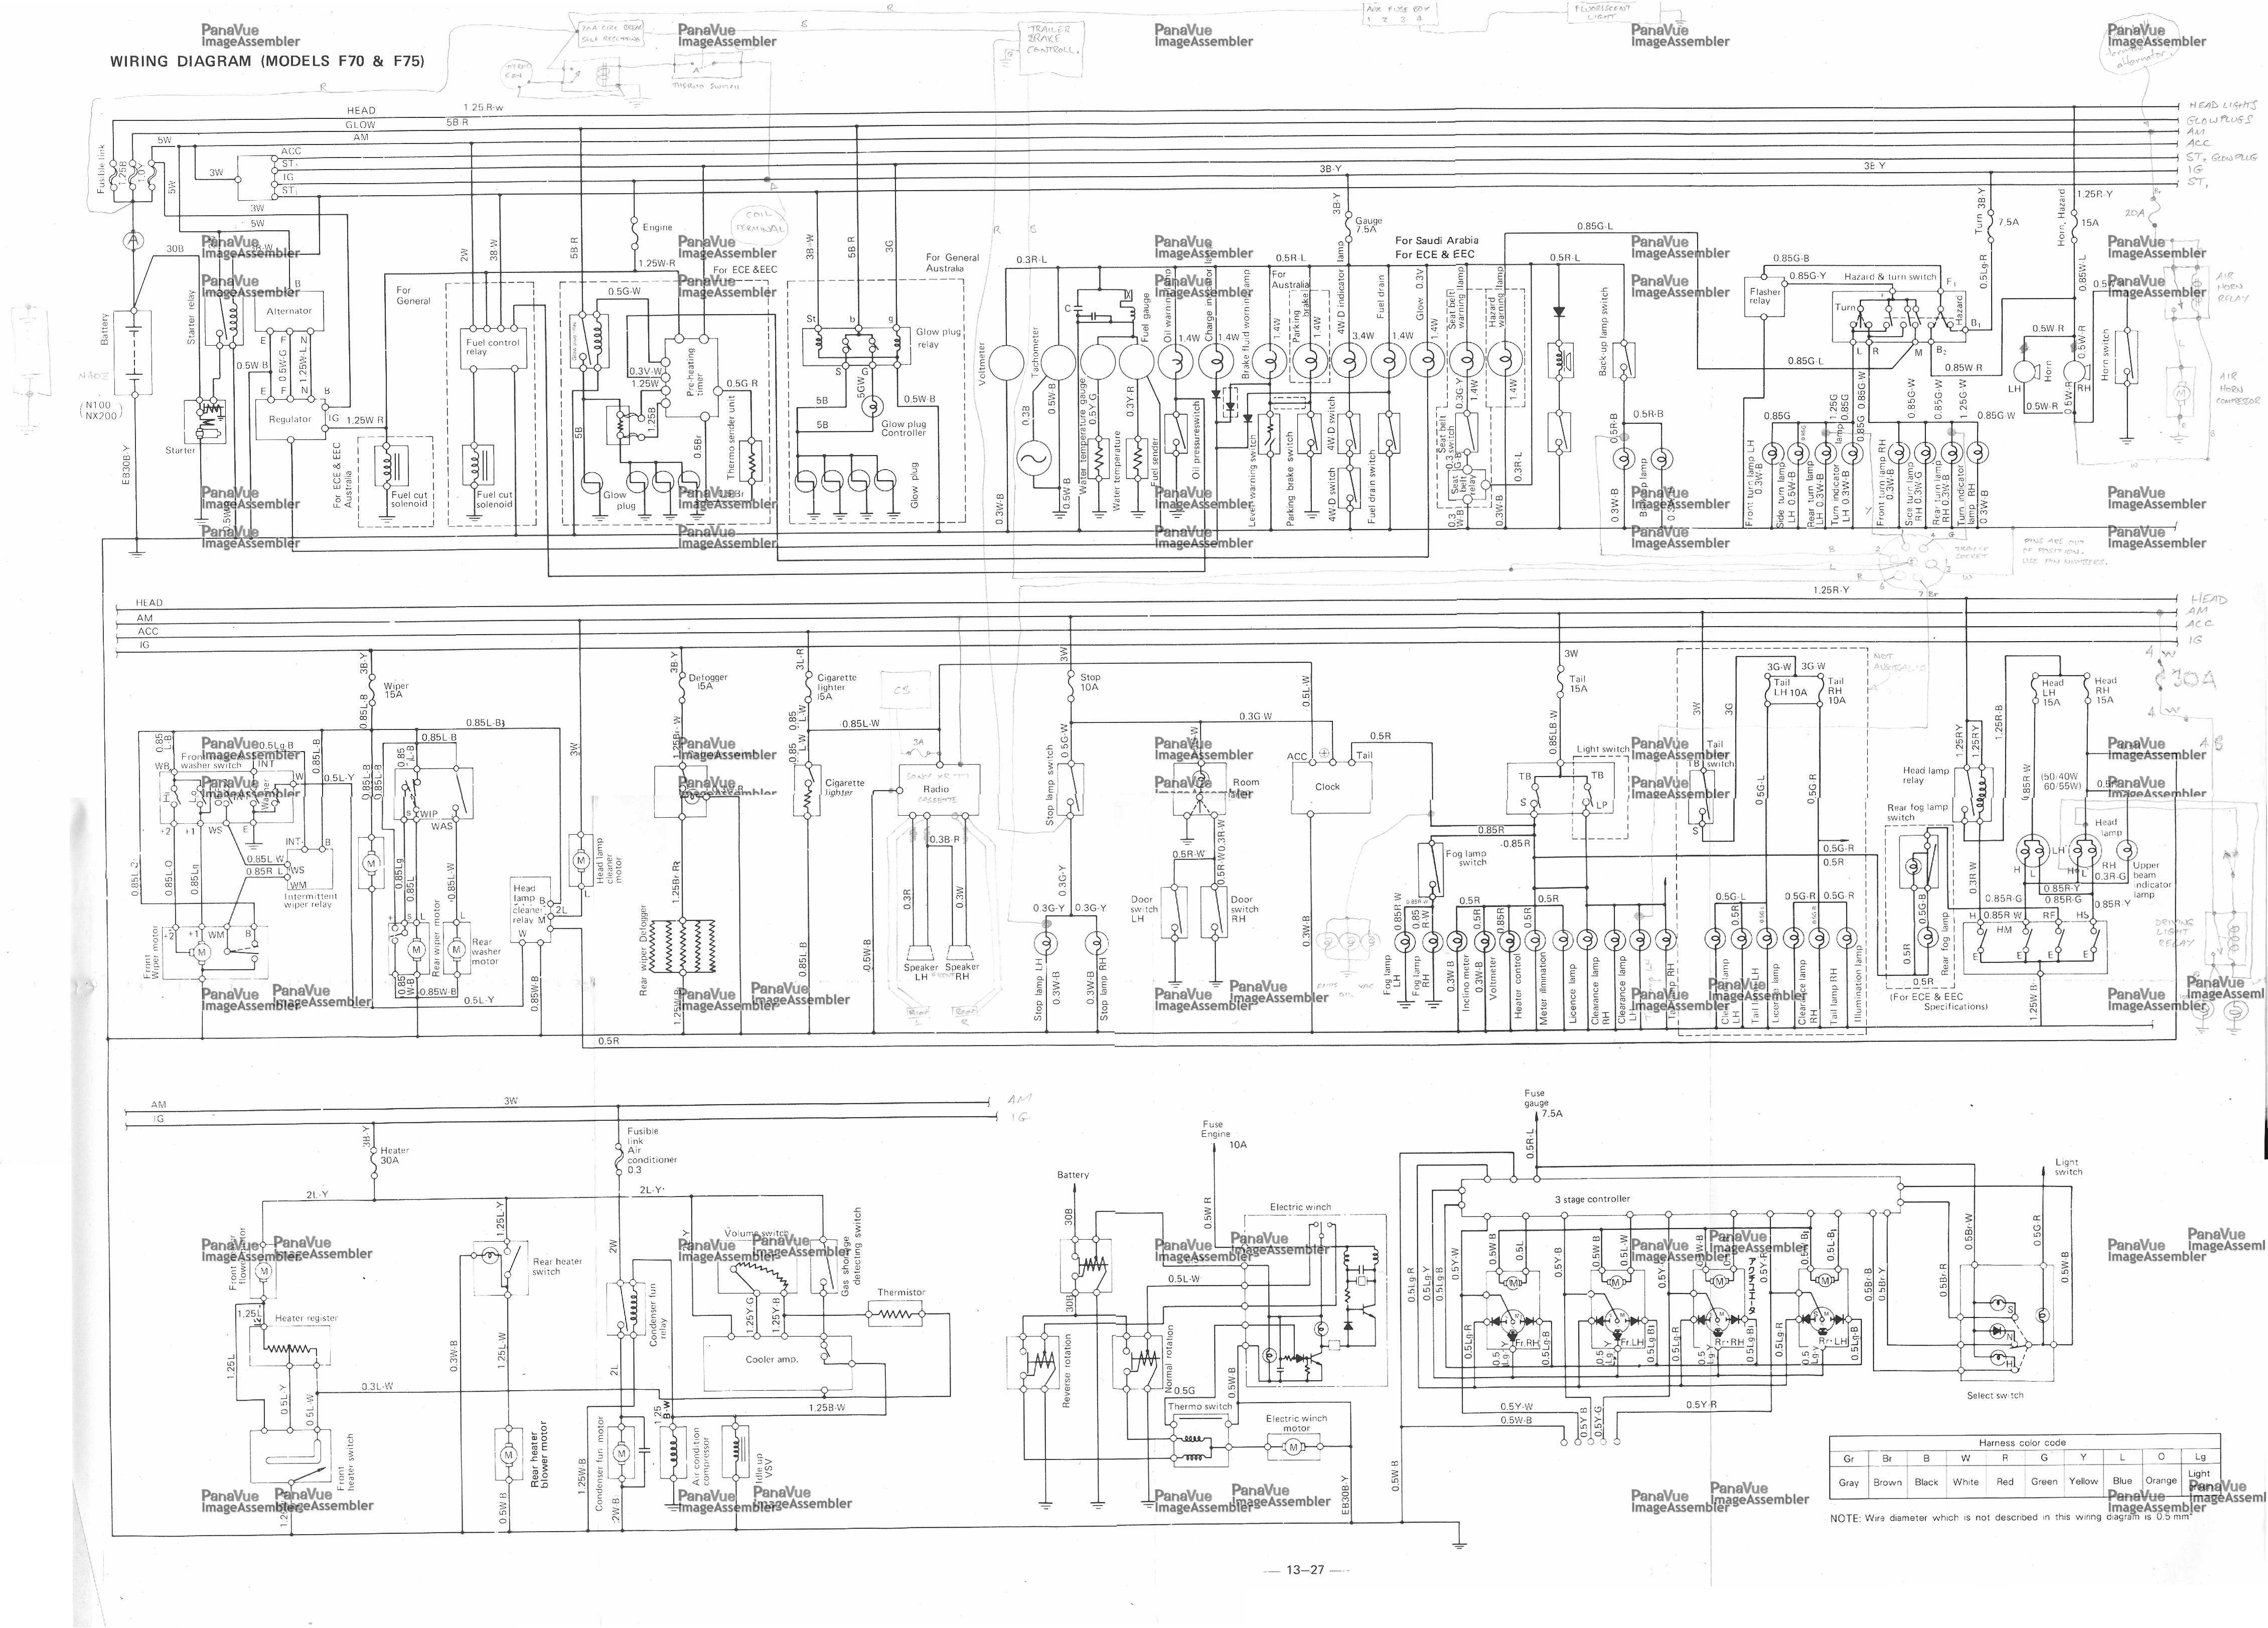 Magnificent megaflow wiring diagram elaboration best images for astounding honda st10 heated grips wiring diagram images best cheapraybanclubmaster Choice Image